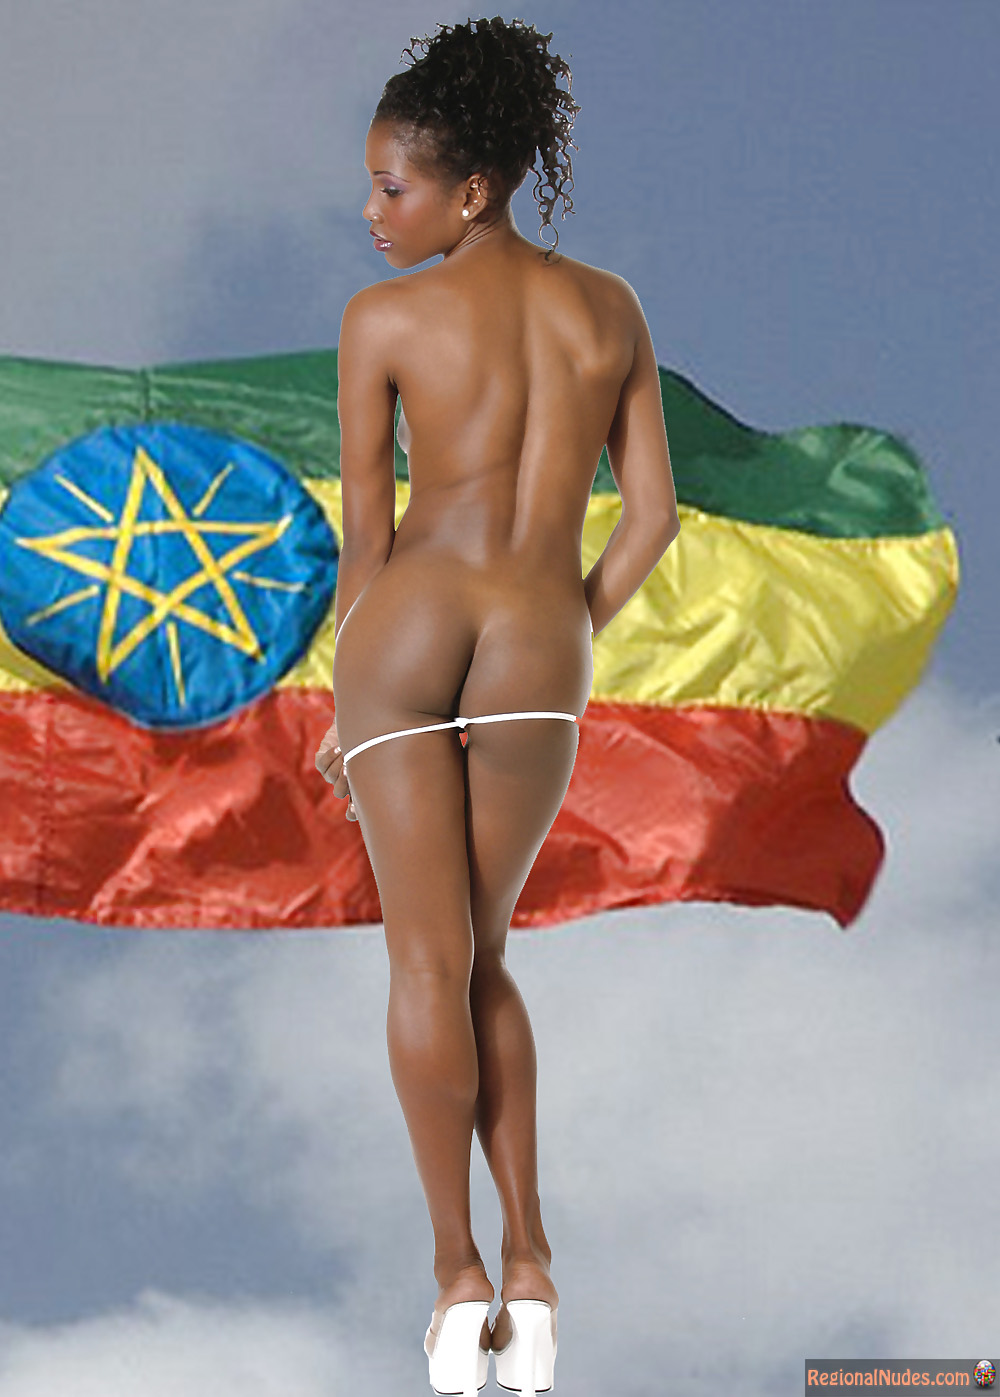 Will know, ethiopians girls who want to be fucked and have